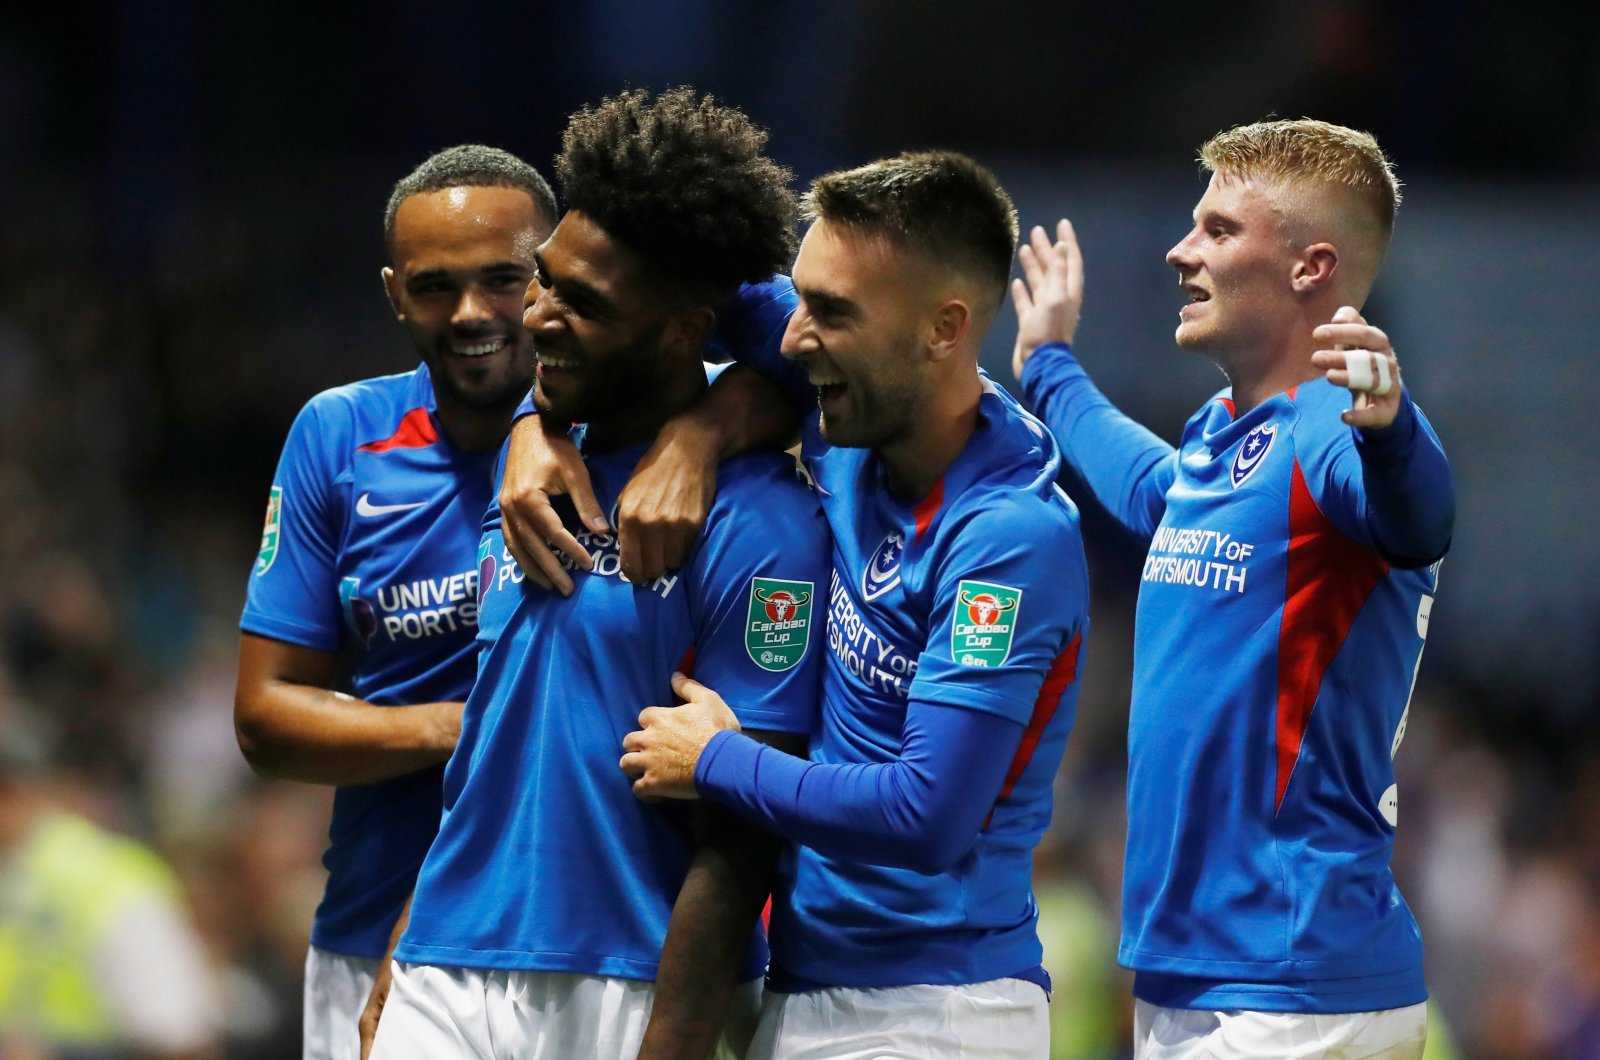 Portsmouth: Lots of Pompey supporters loved Ellis Harrison's two-goal performance against Southend